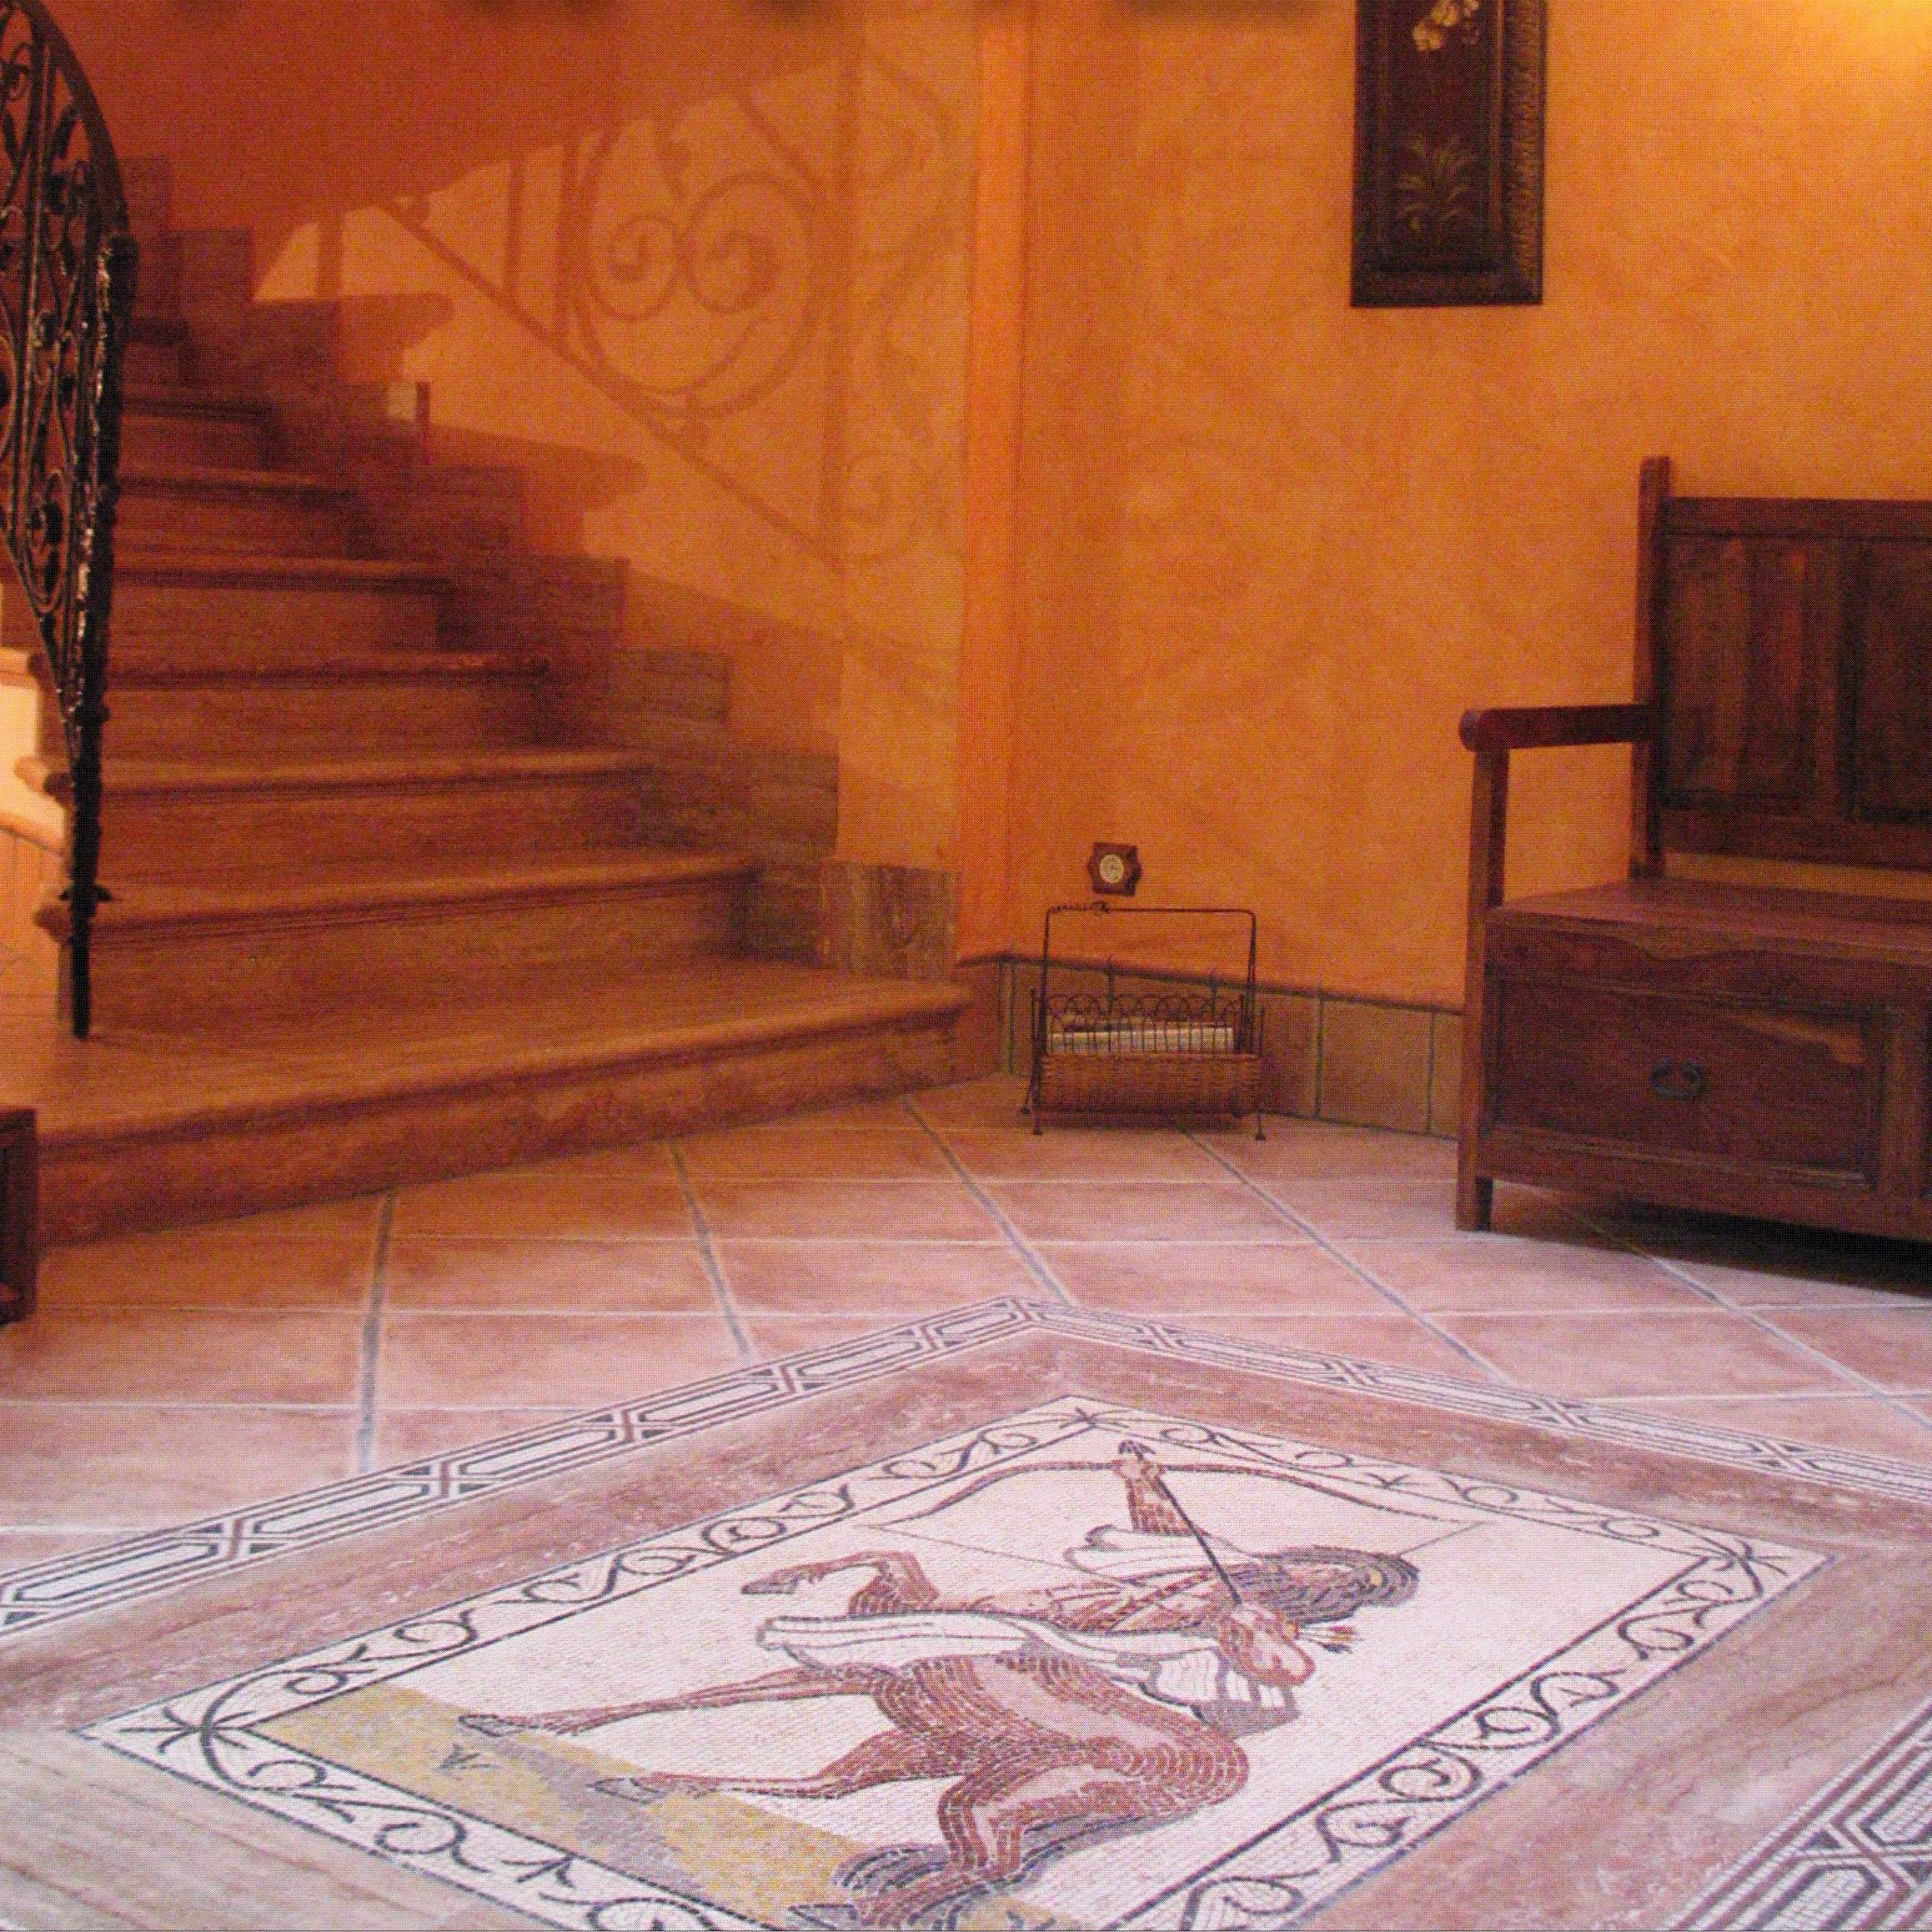 Floor Roman mosaic in a home interior